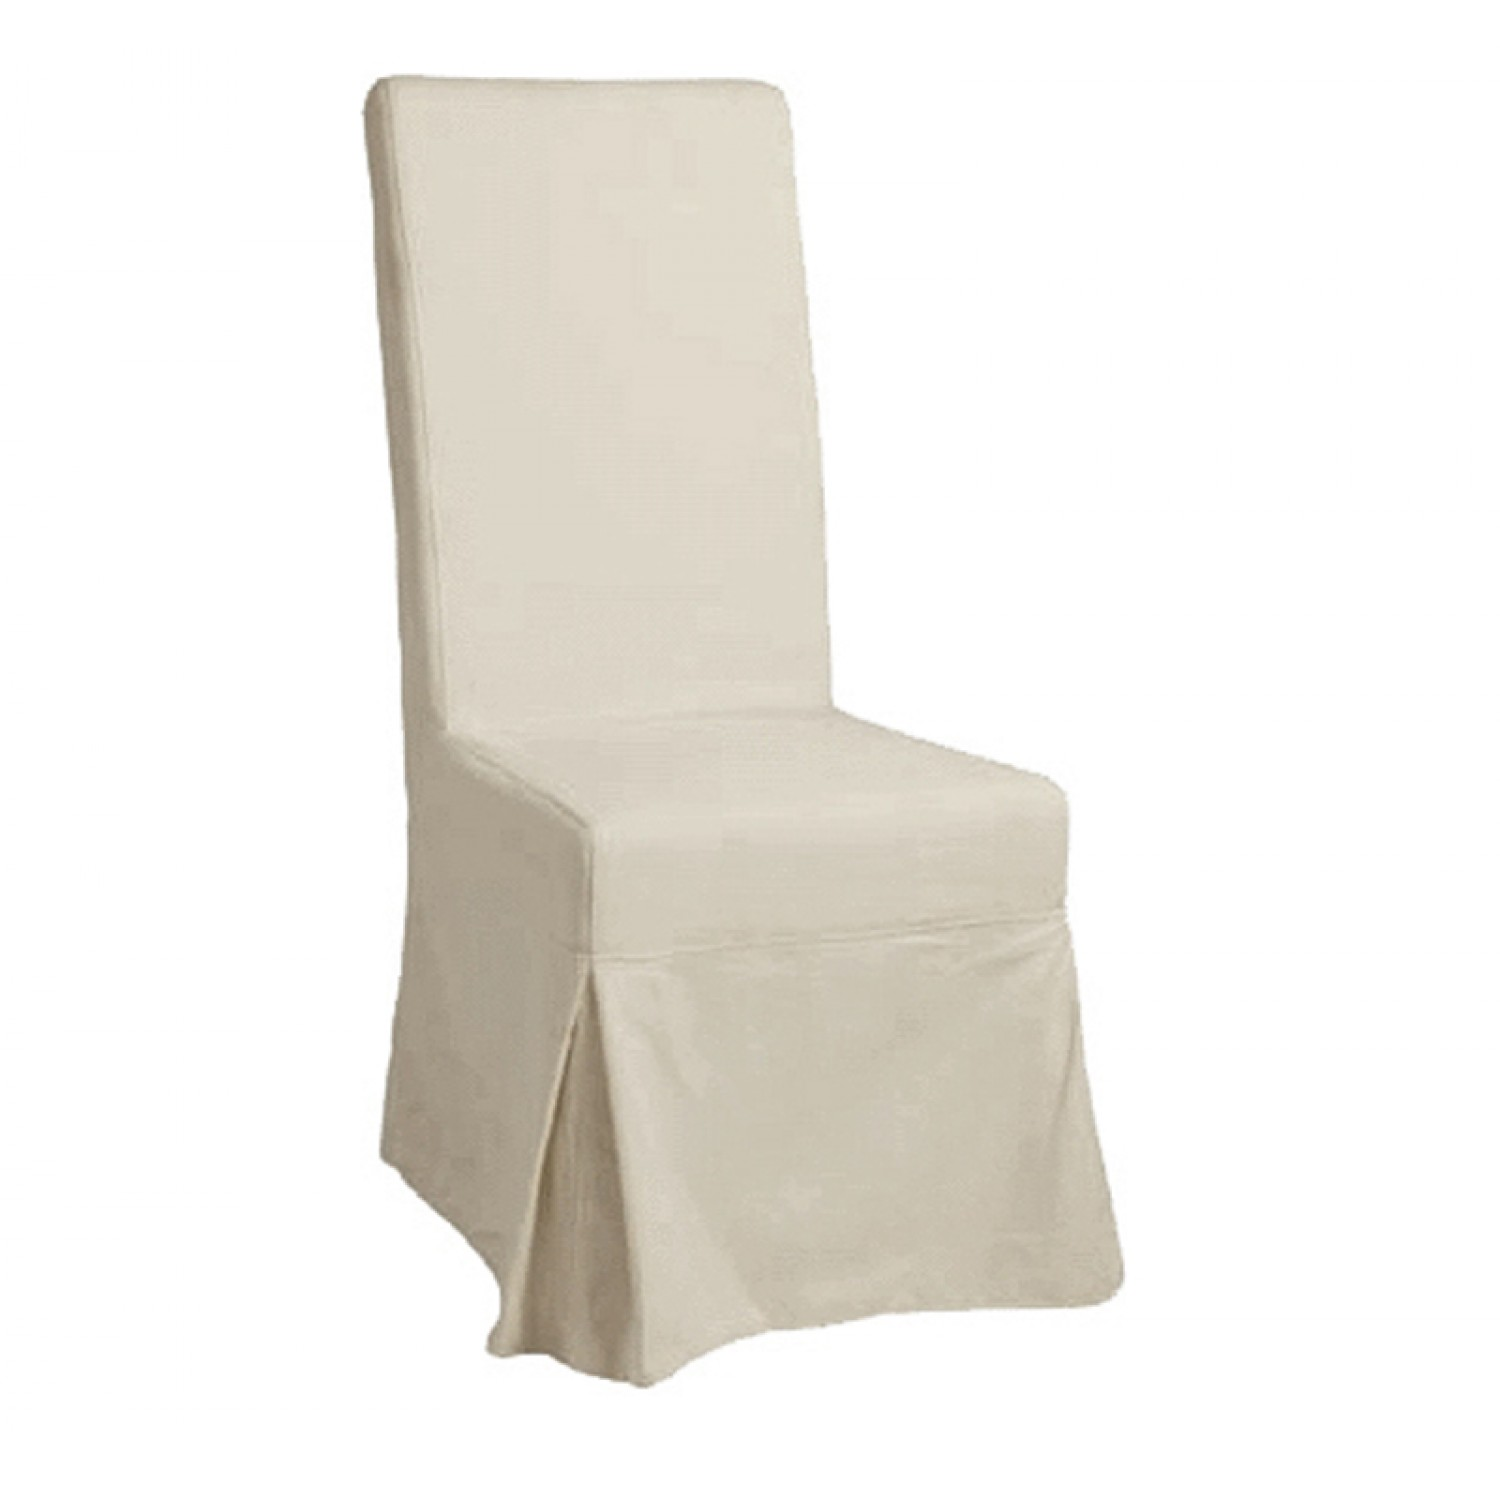 White slipcovered dining chair large and beautiful for White chair design